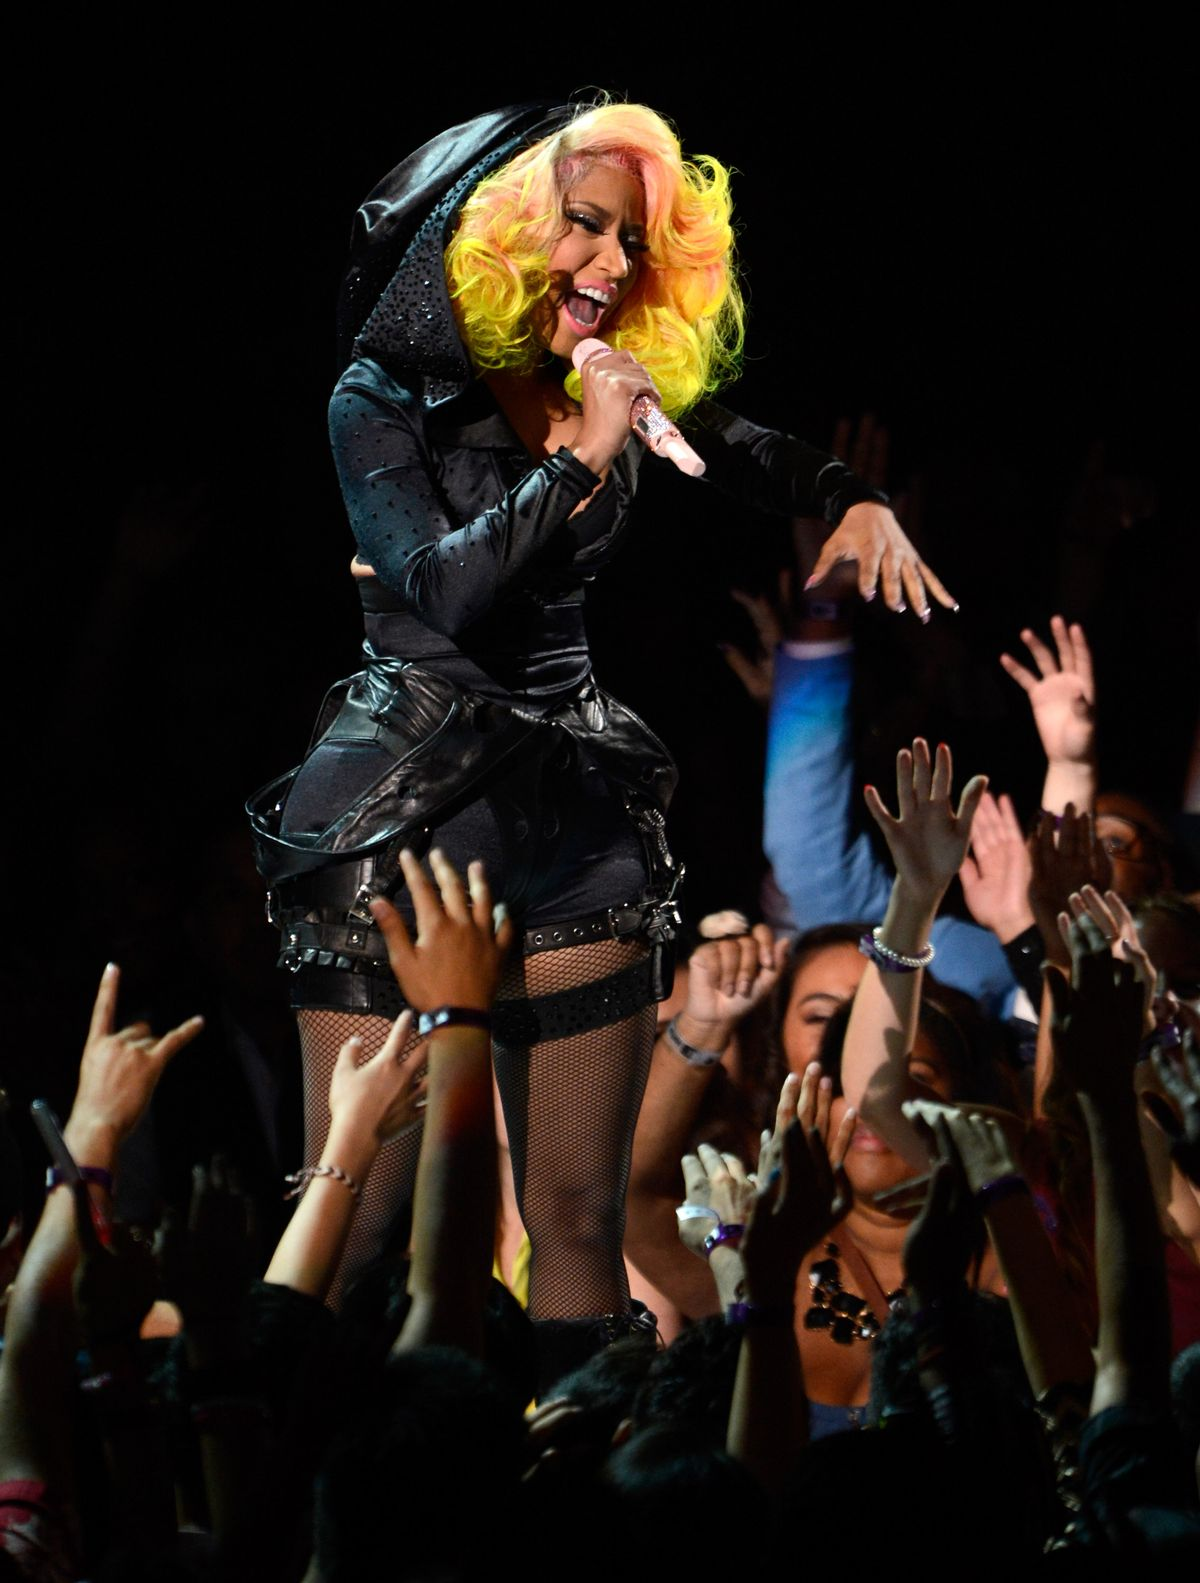 LOS ANGELES, CA - SEPTEMBER 06: Nicki Minaj performs onstage during the 2012 MTV Video Music Awards at Staples Center on September 6, 2012 in Los Angeles, California. (Photo by Kevin Mazur/WireImage)